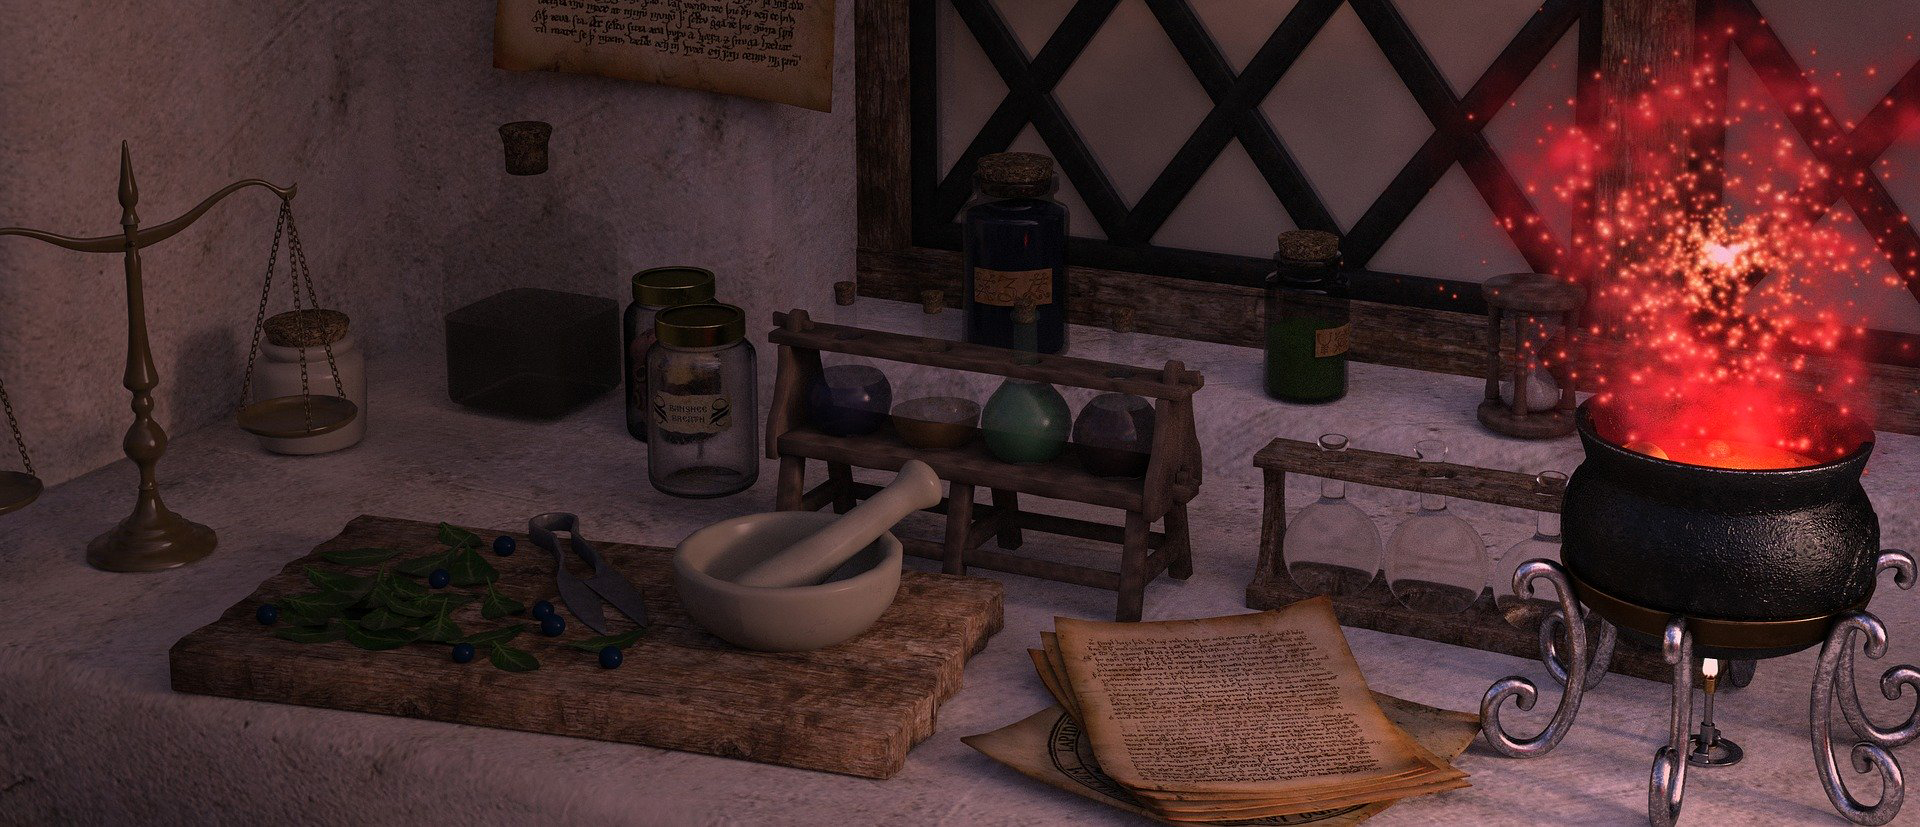 Table with Potion